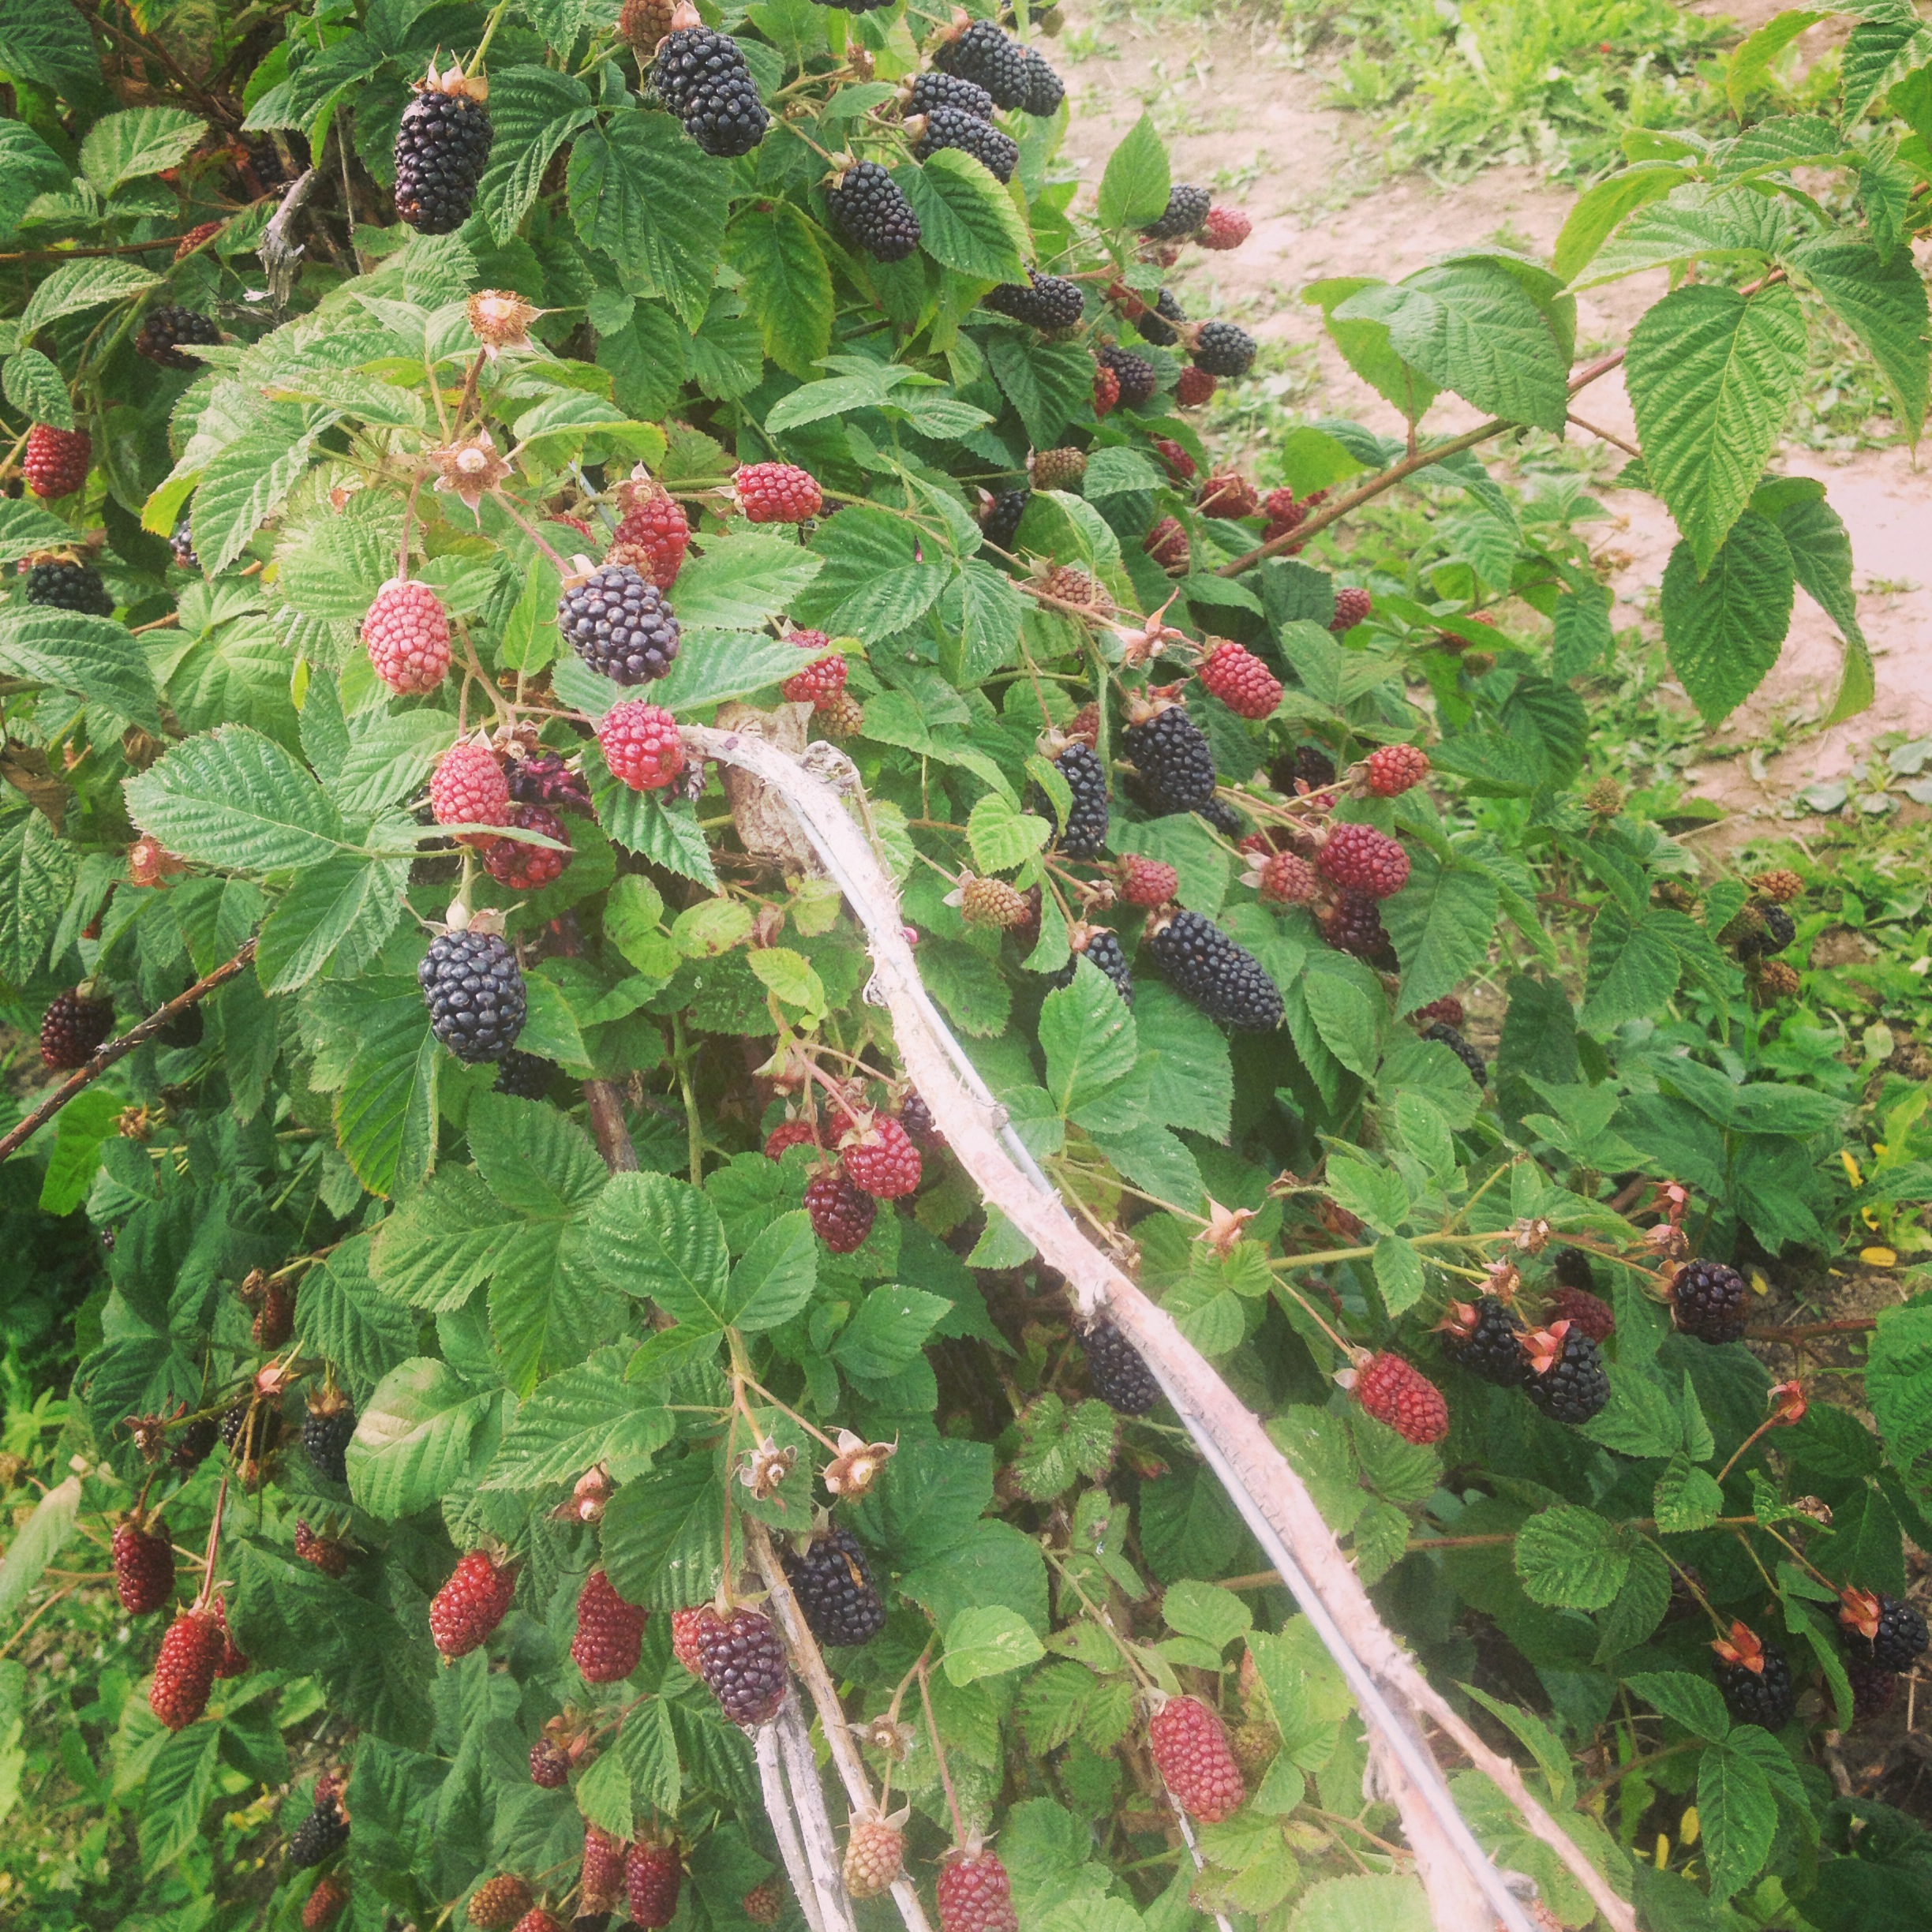 blackberries-in-field